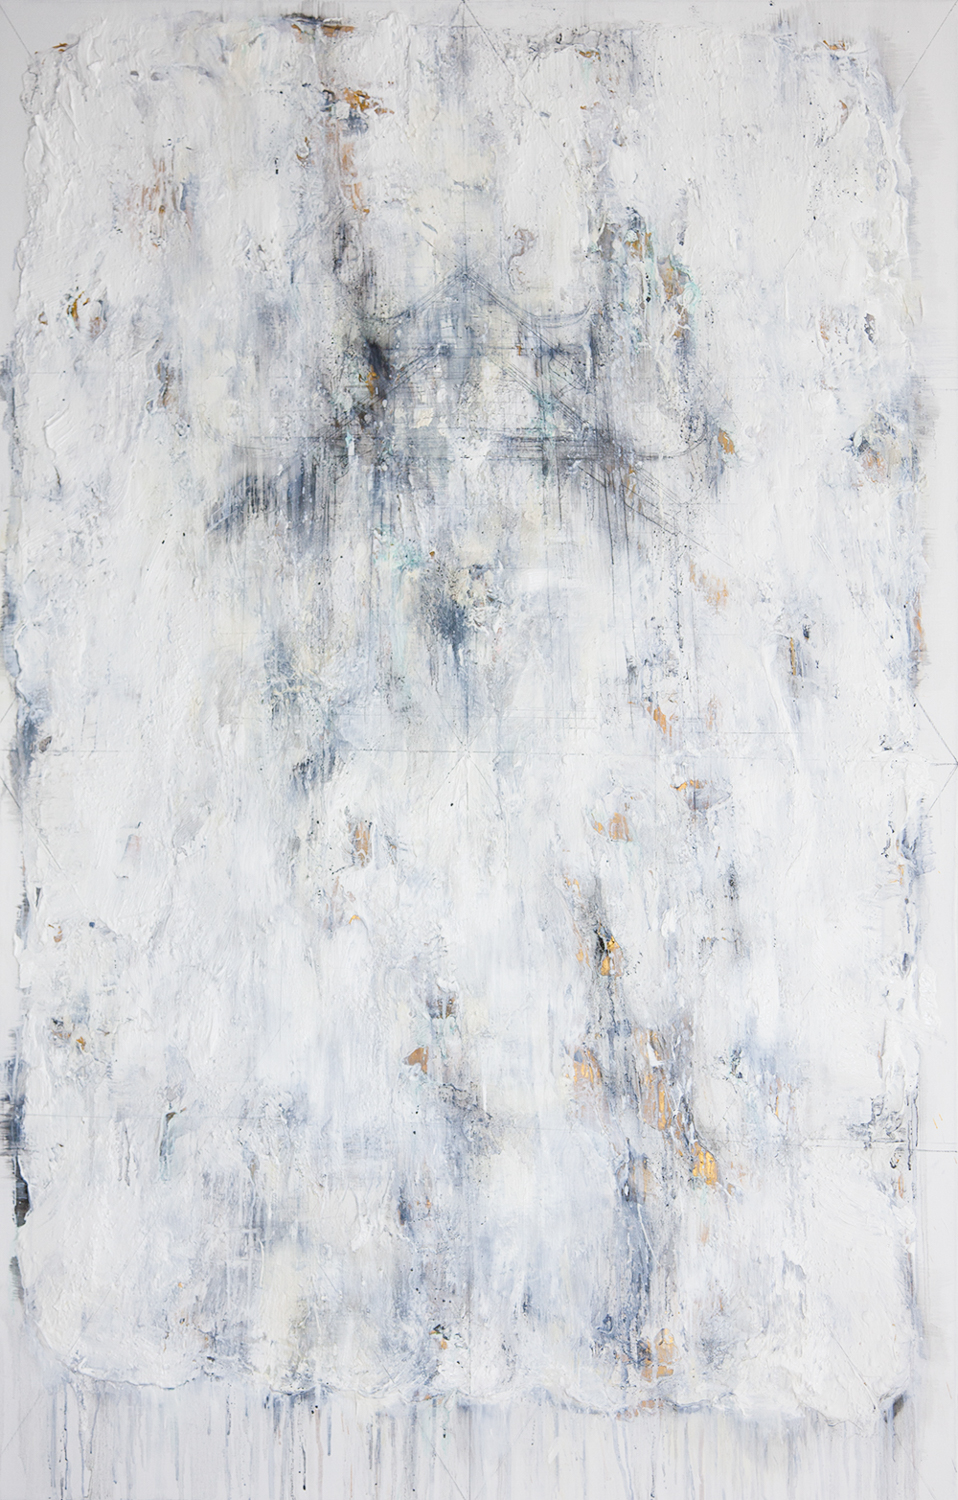 Foggy Days At Lake #1, 2016, Mixed Media on Canvas, 140 x 90 cm, HA Manh Thang